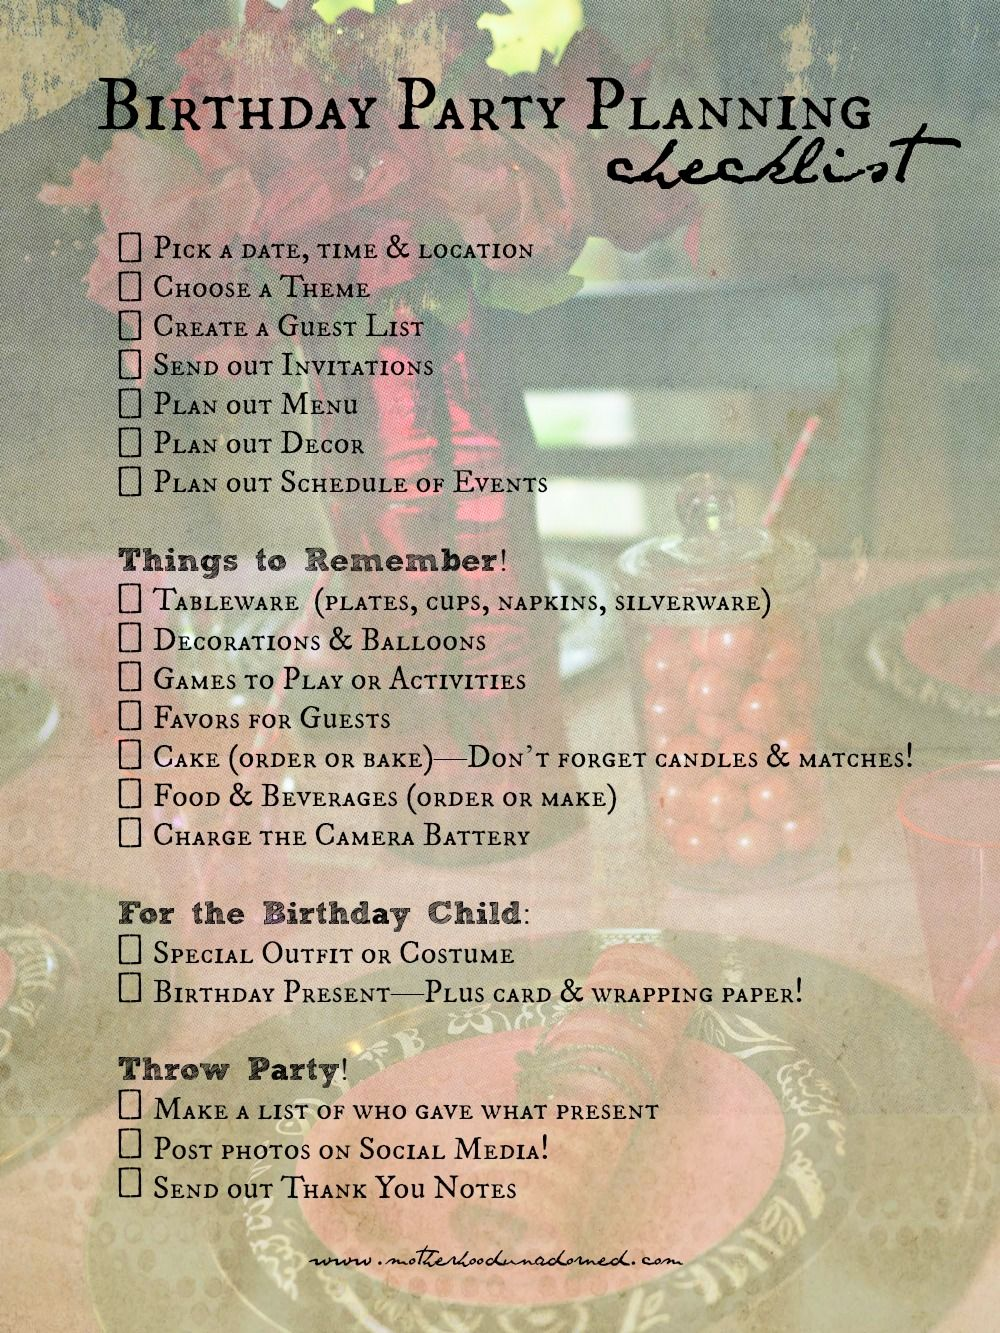 Birthday Party Planning Checklist  Princess Party